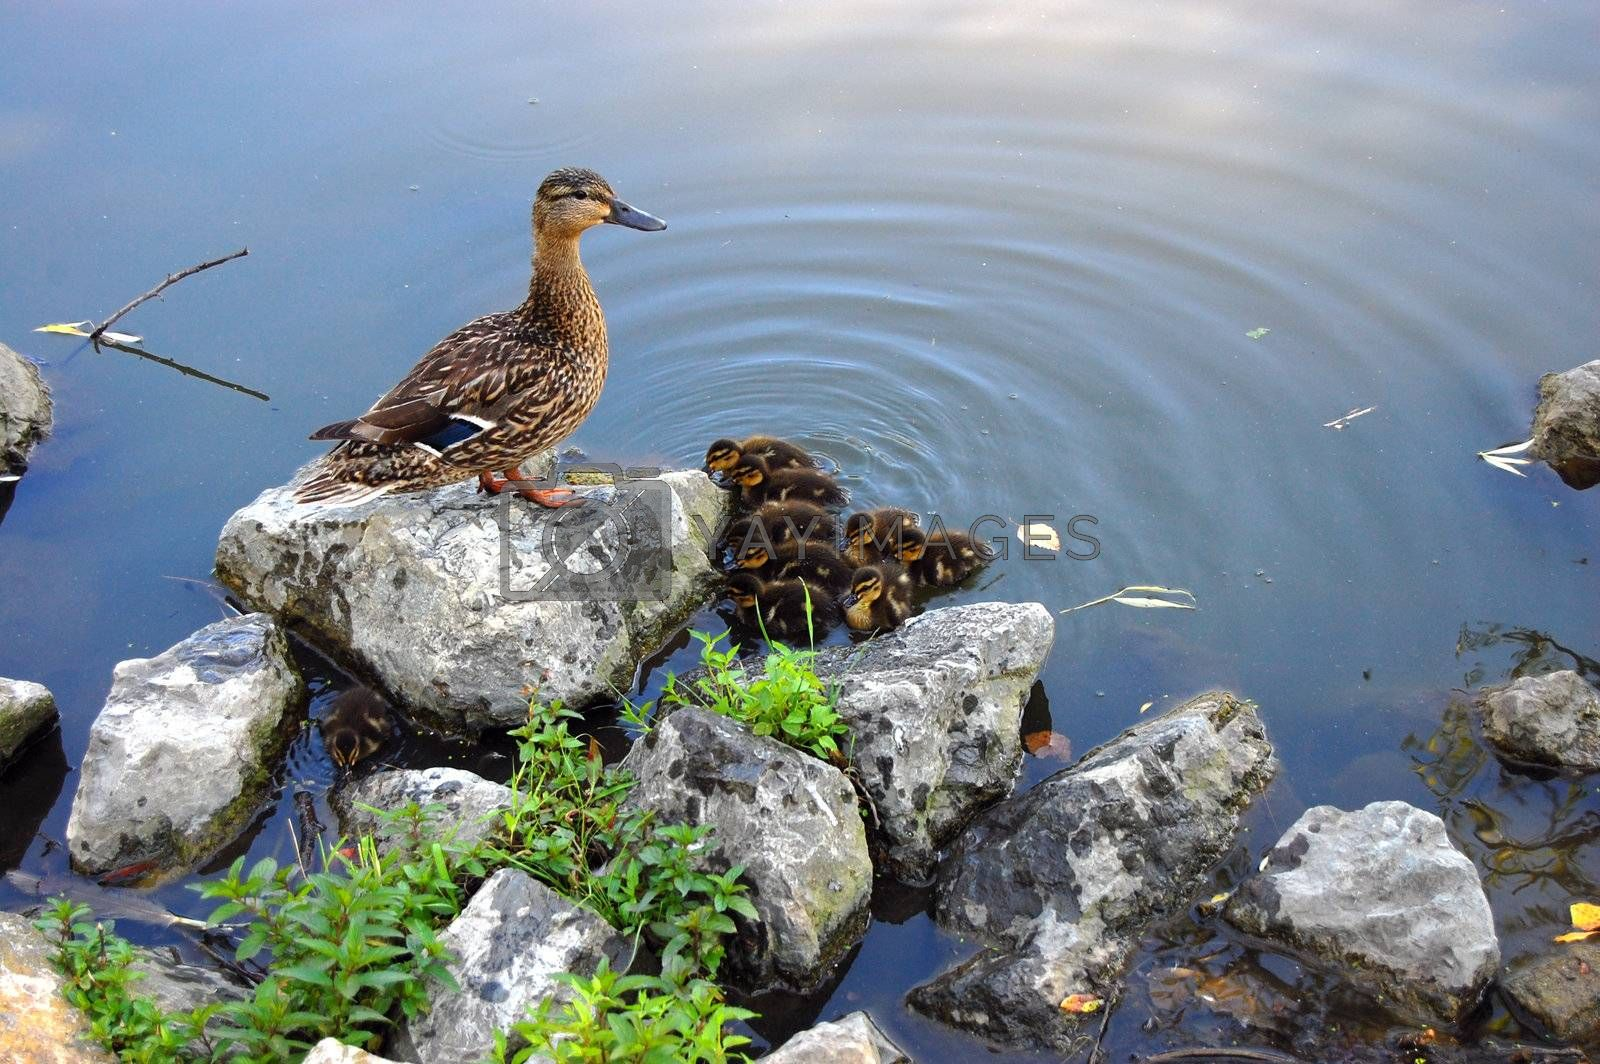 Duck and babies in pond